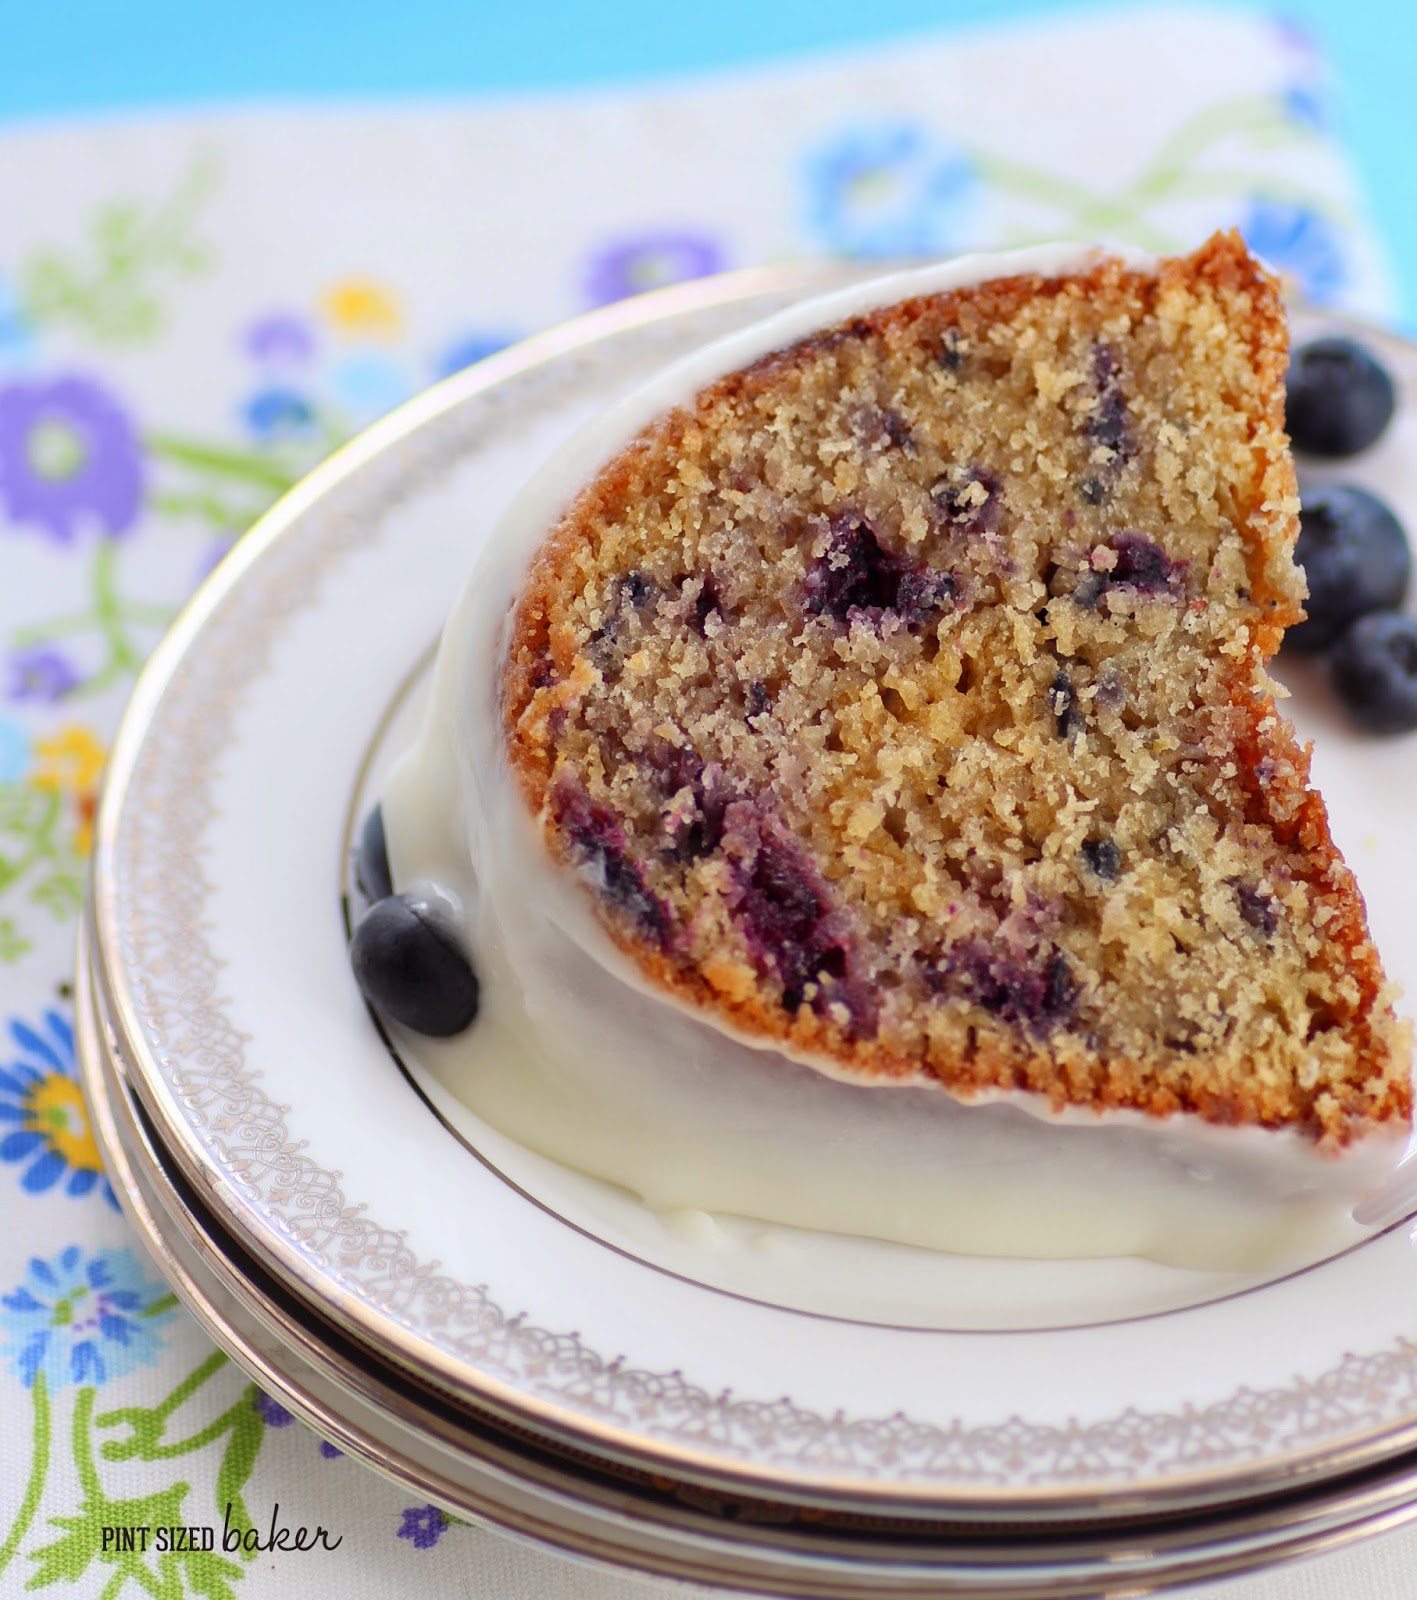 The best Blueberry Marble Cake ever! You've gotta make this!